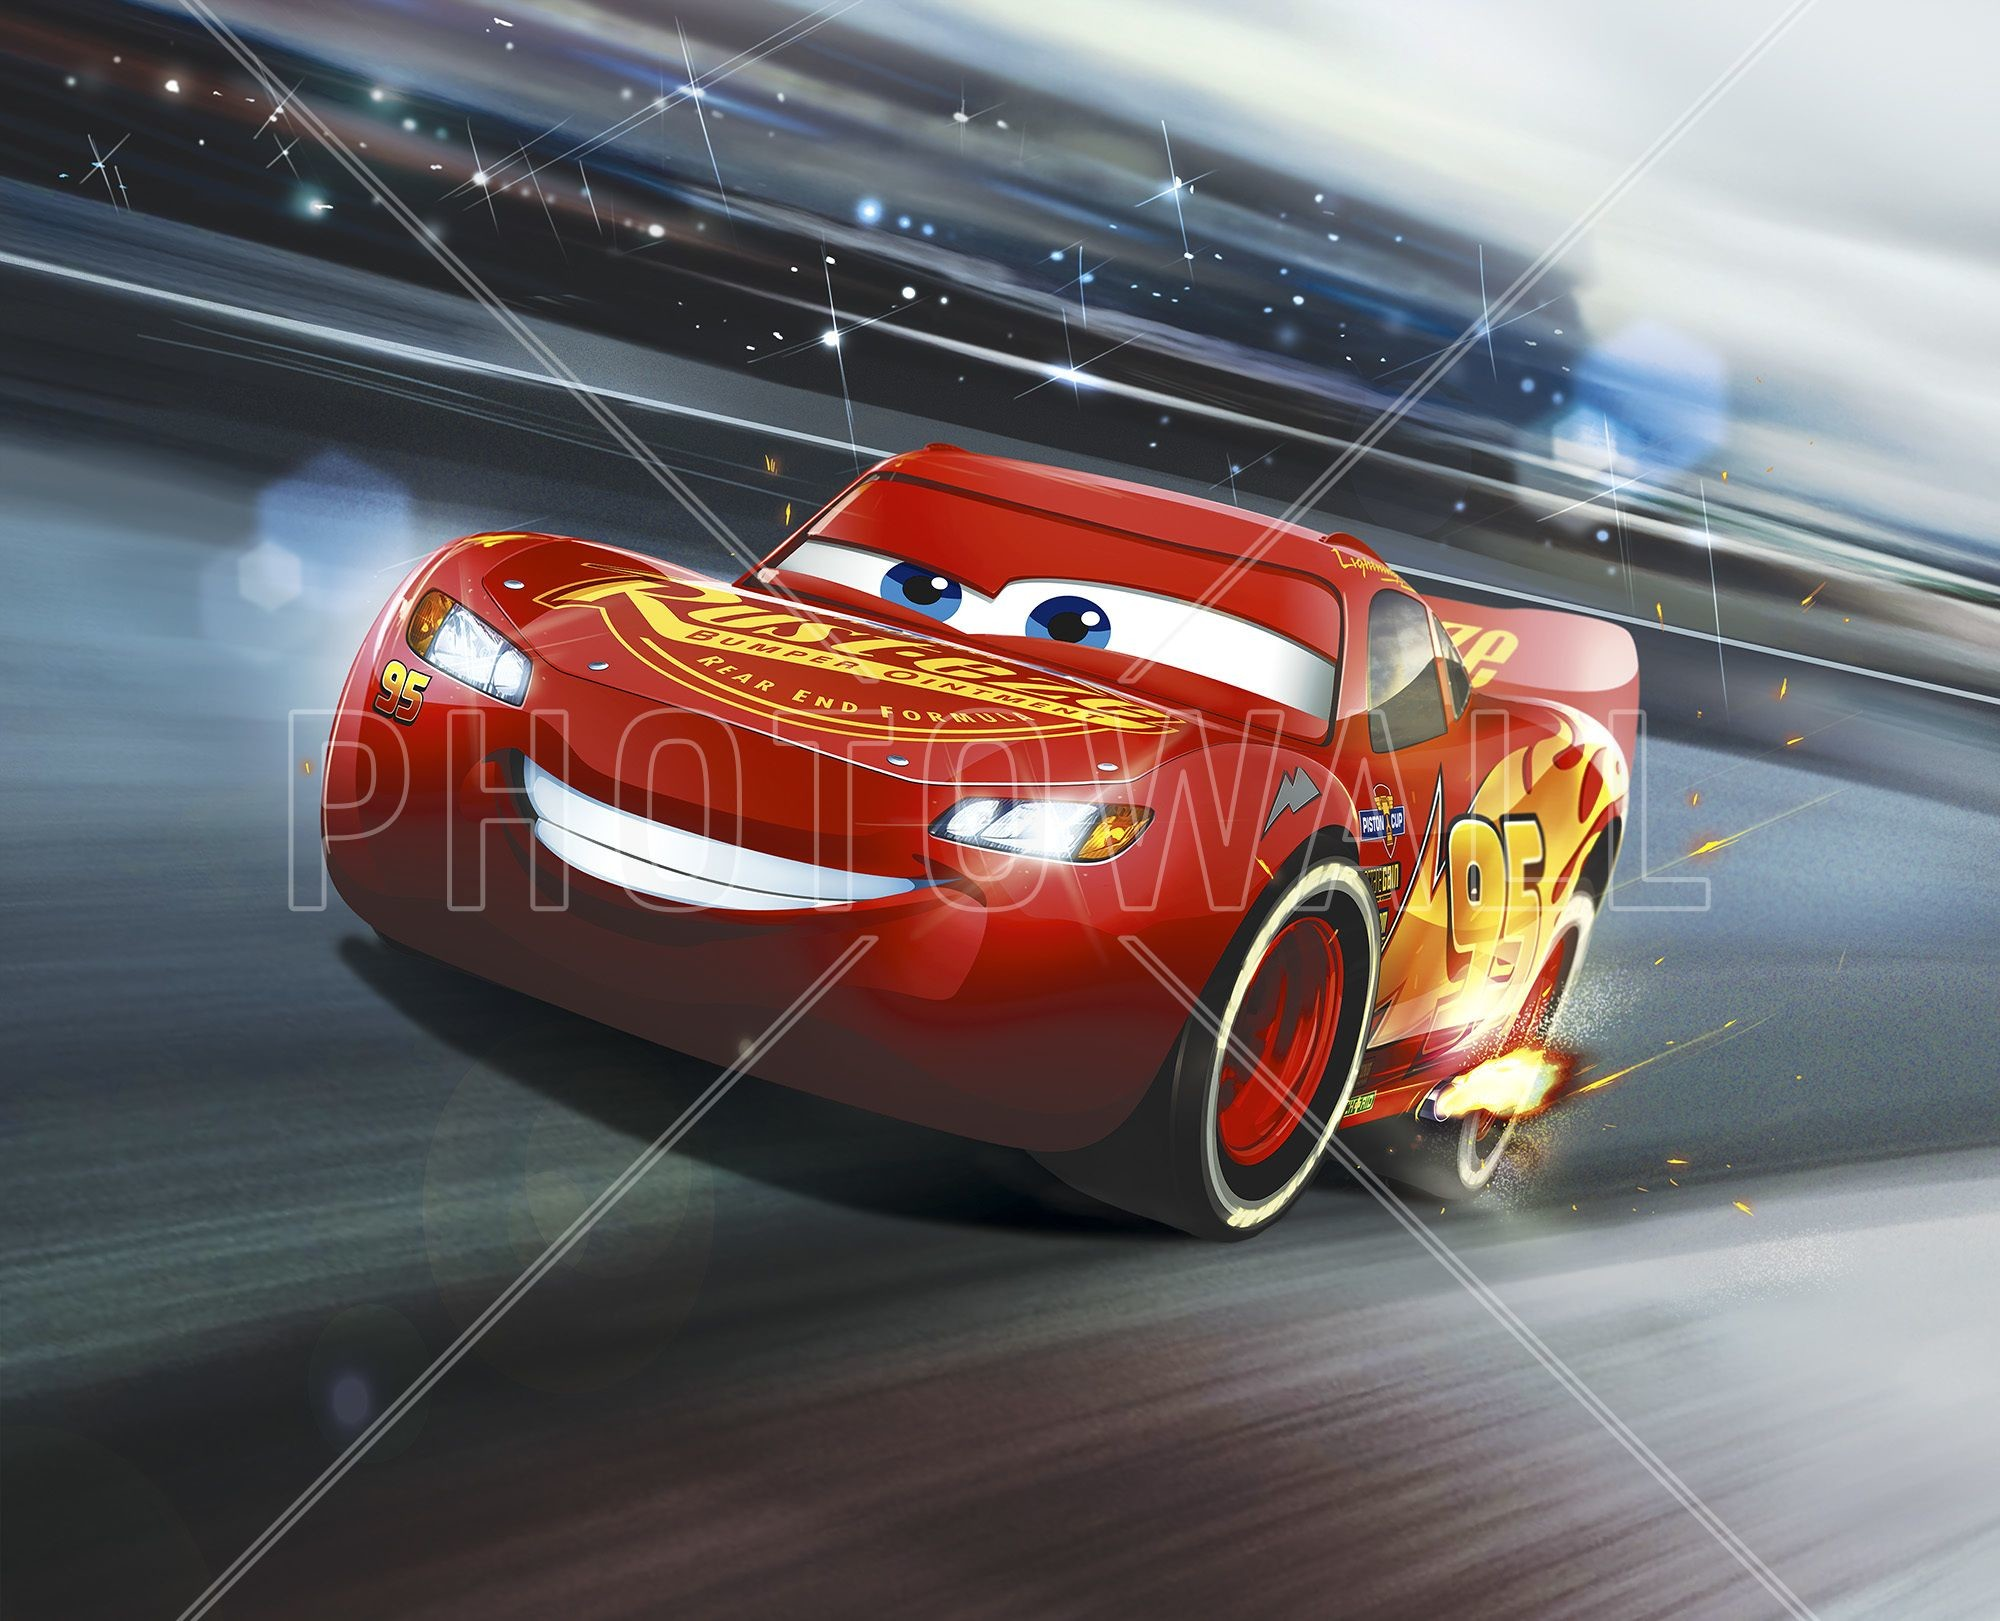 Res: 2000x1621, Cars 3 - Lightning McQueen - Legend of the Track - Wall Mural & Photo  Wallpaper - Photowall